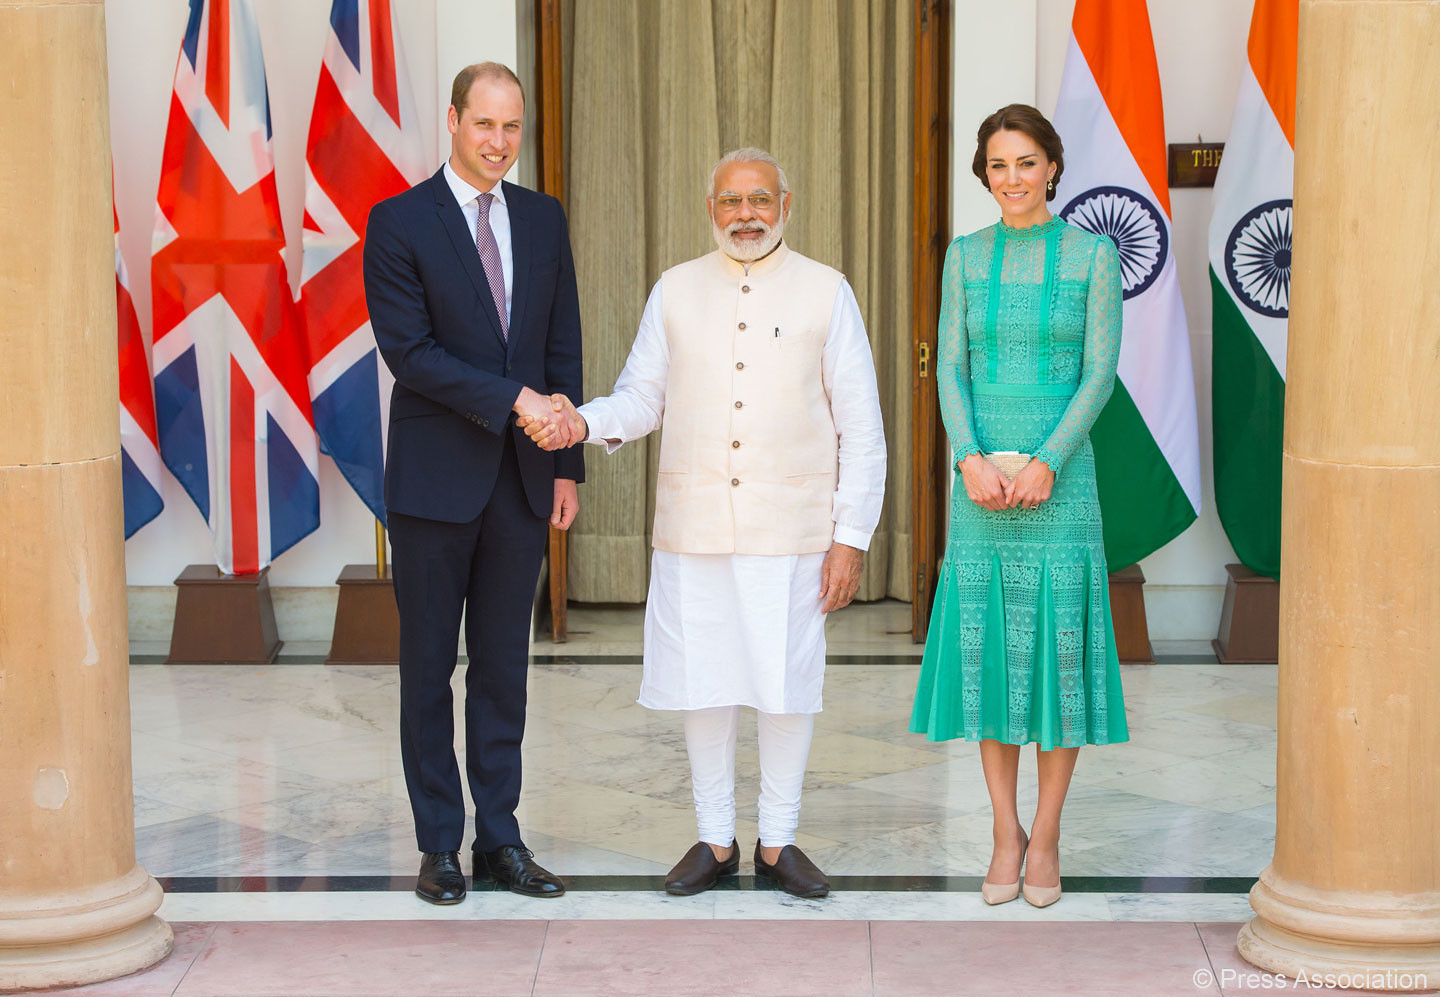 Duke and Duchess of Cambridge met with the Indian Prime Minister during India visit